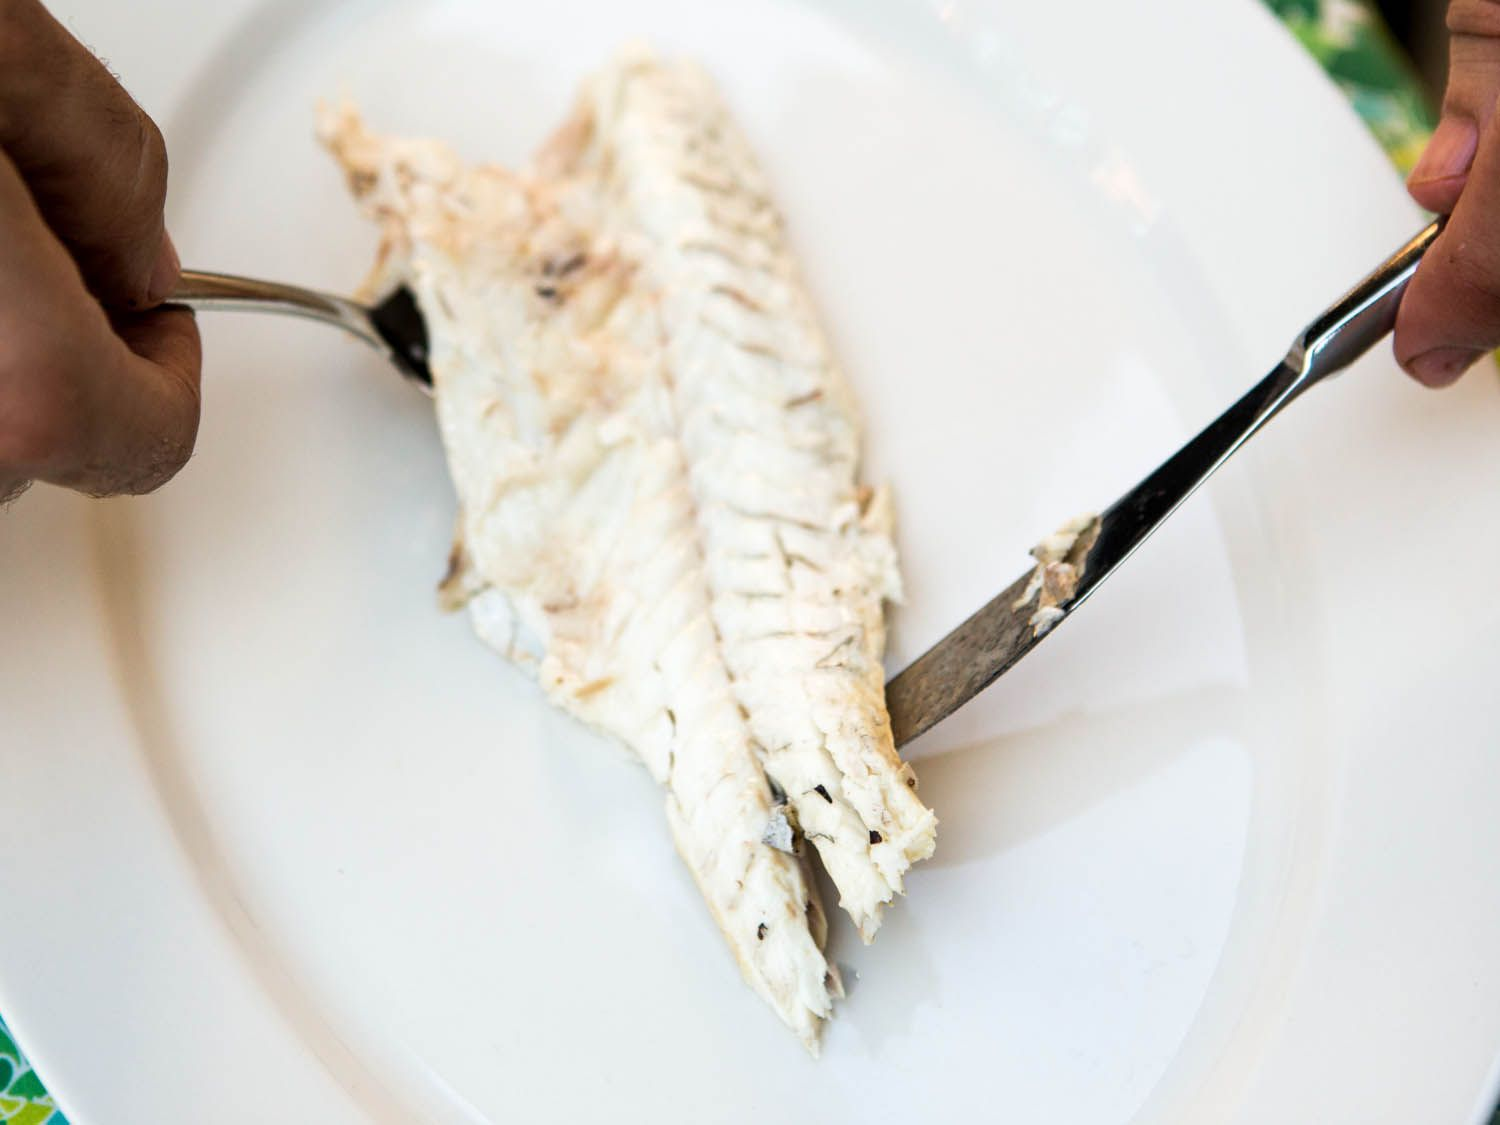 20140708-how-to-serve-whole-fish-vicky-wasik-30.jpg